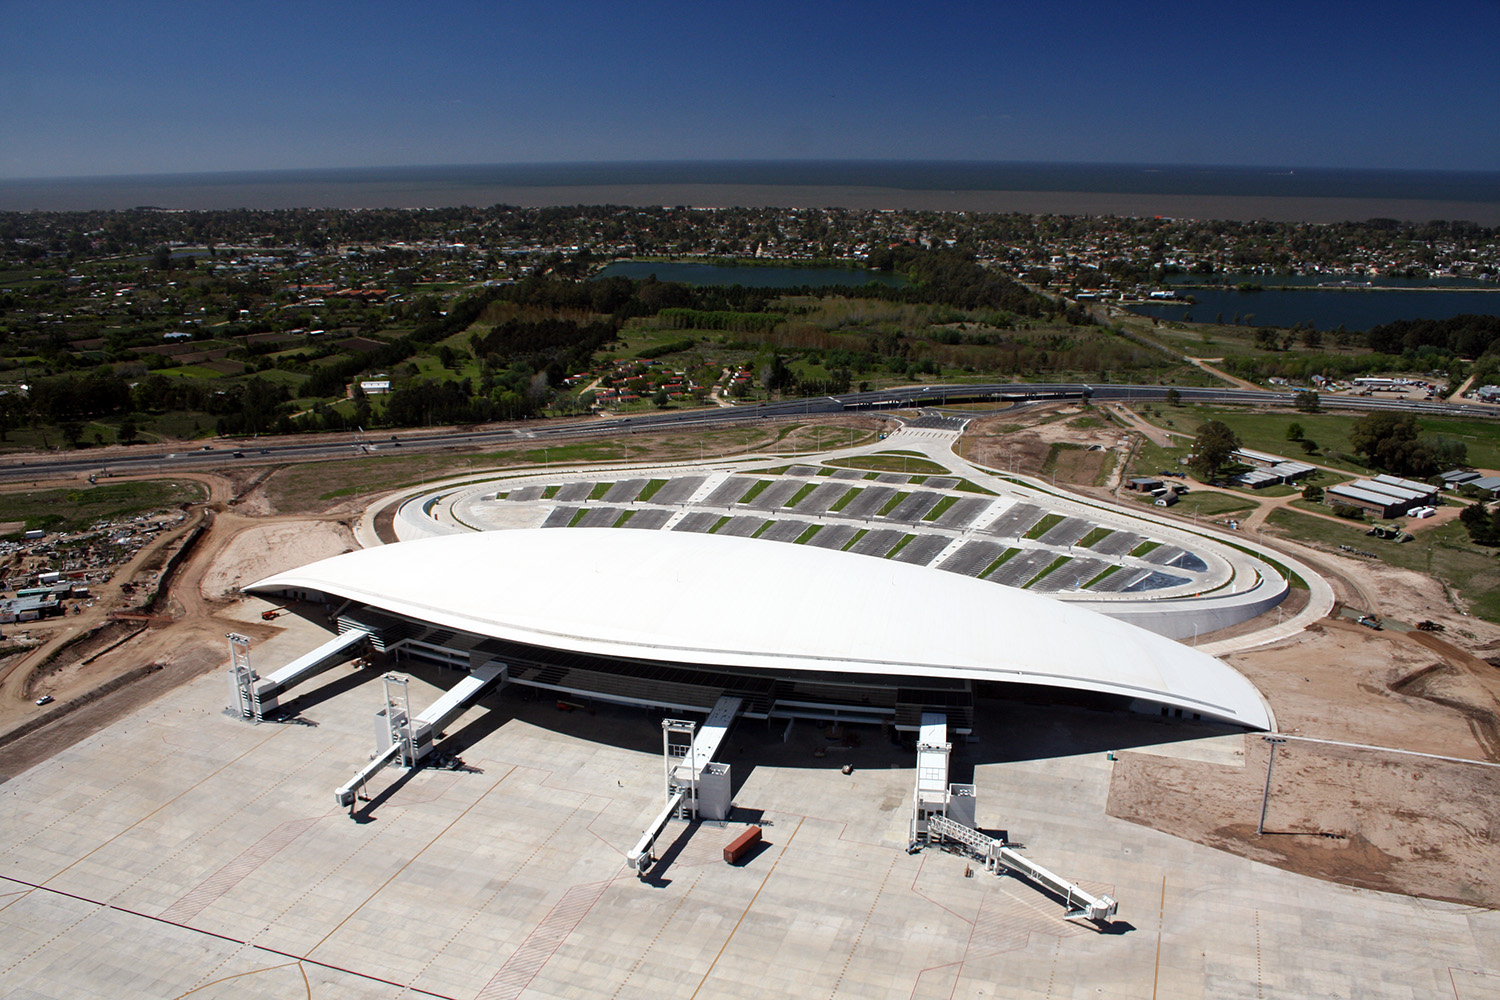 The roofing of Viñoly's Carrasco International Airport in Montevideo